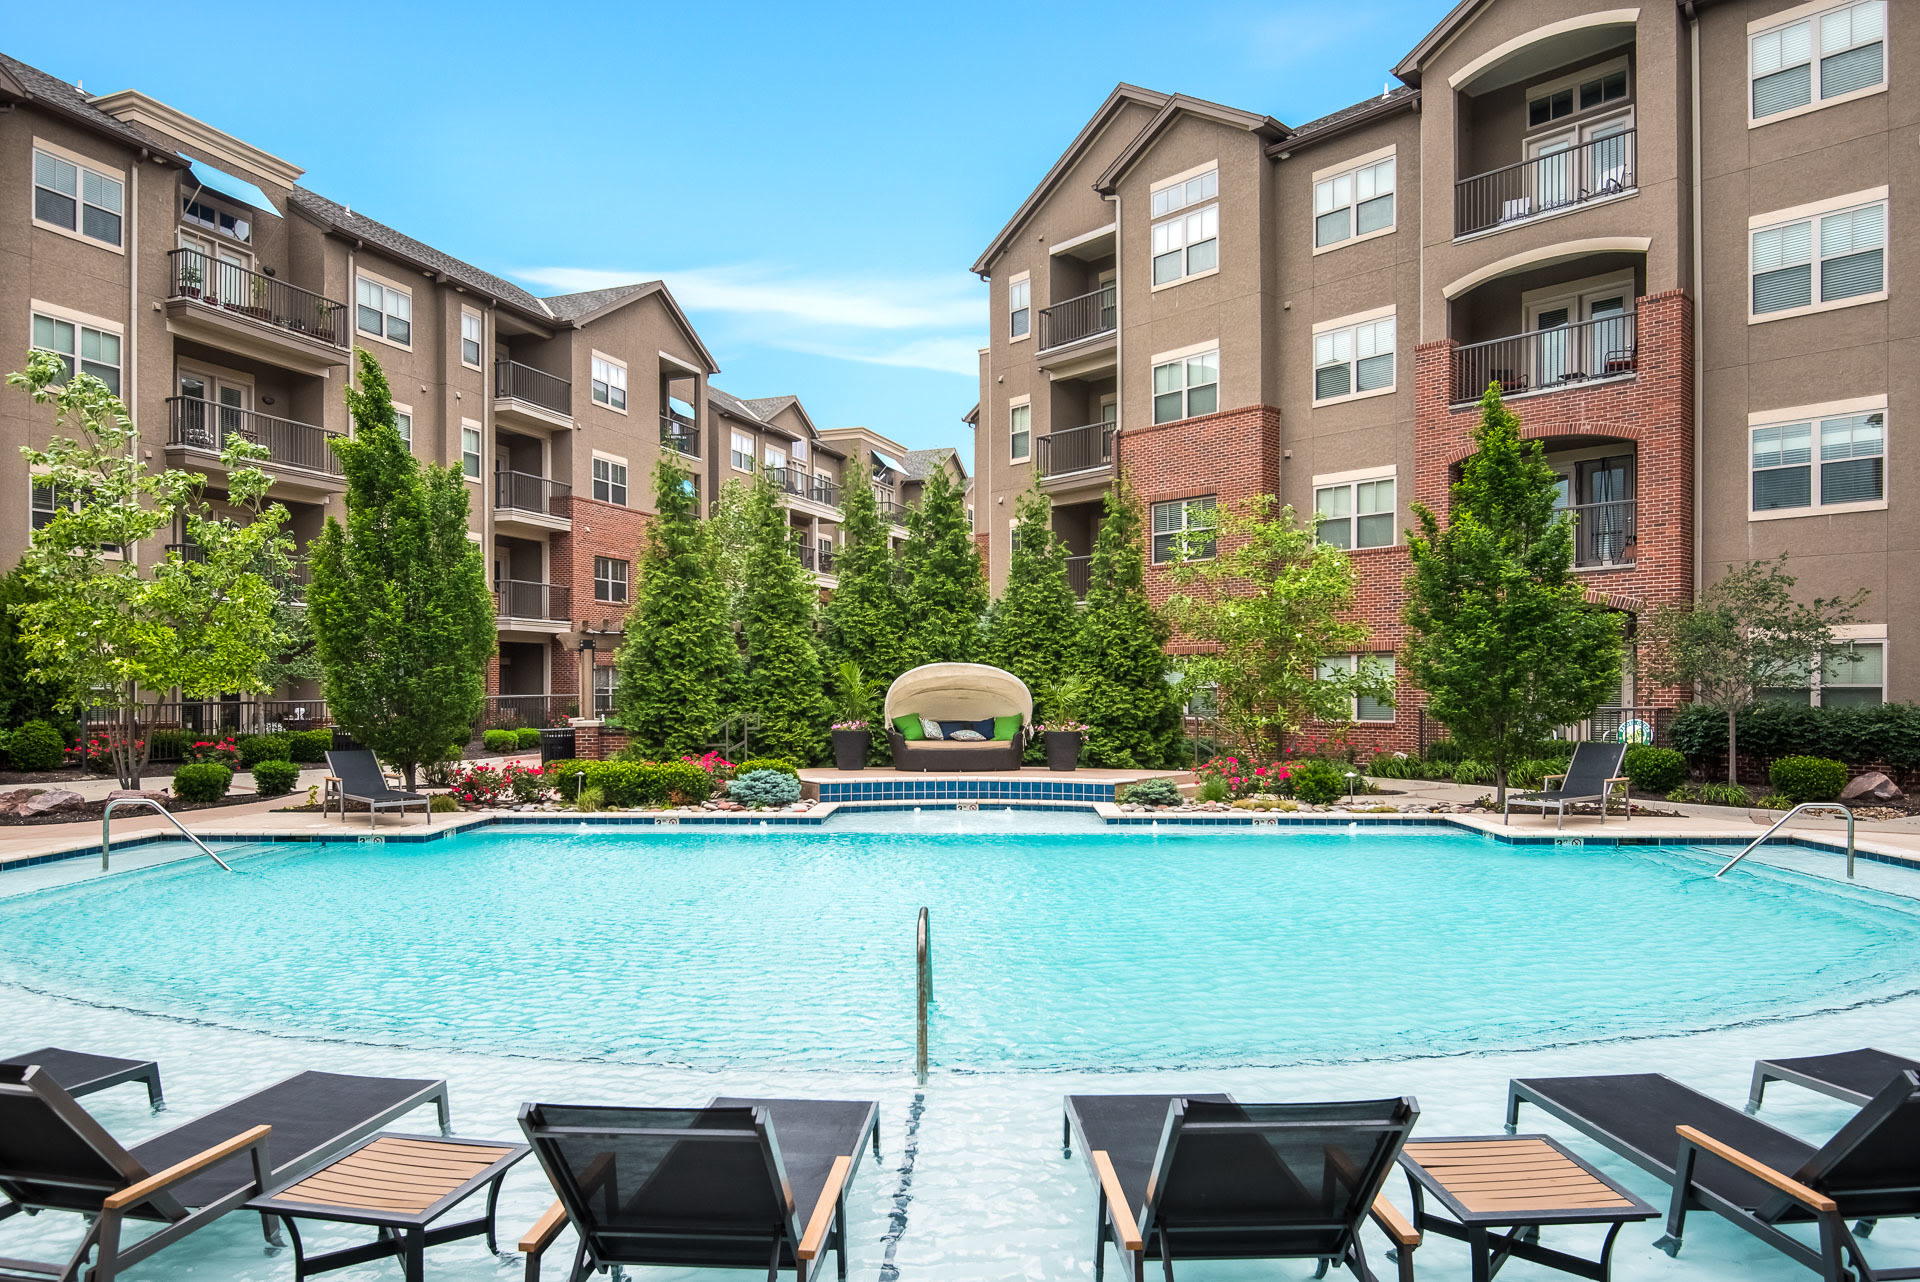 Village at Mission Farms - Apartments for rent